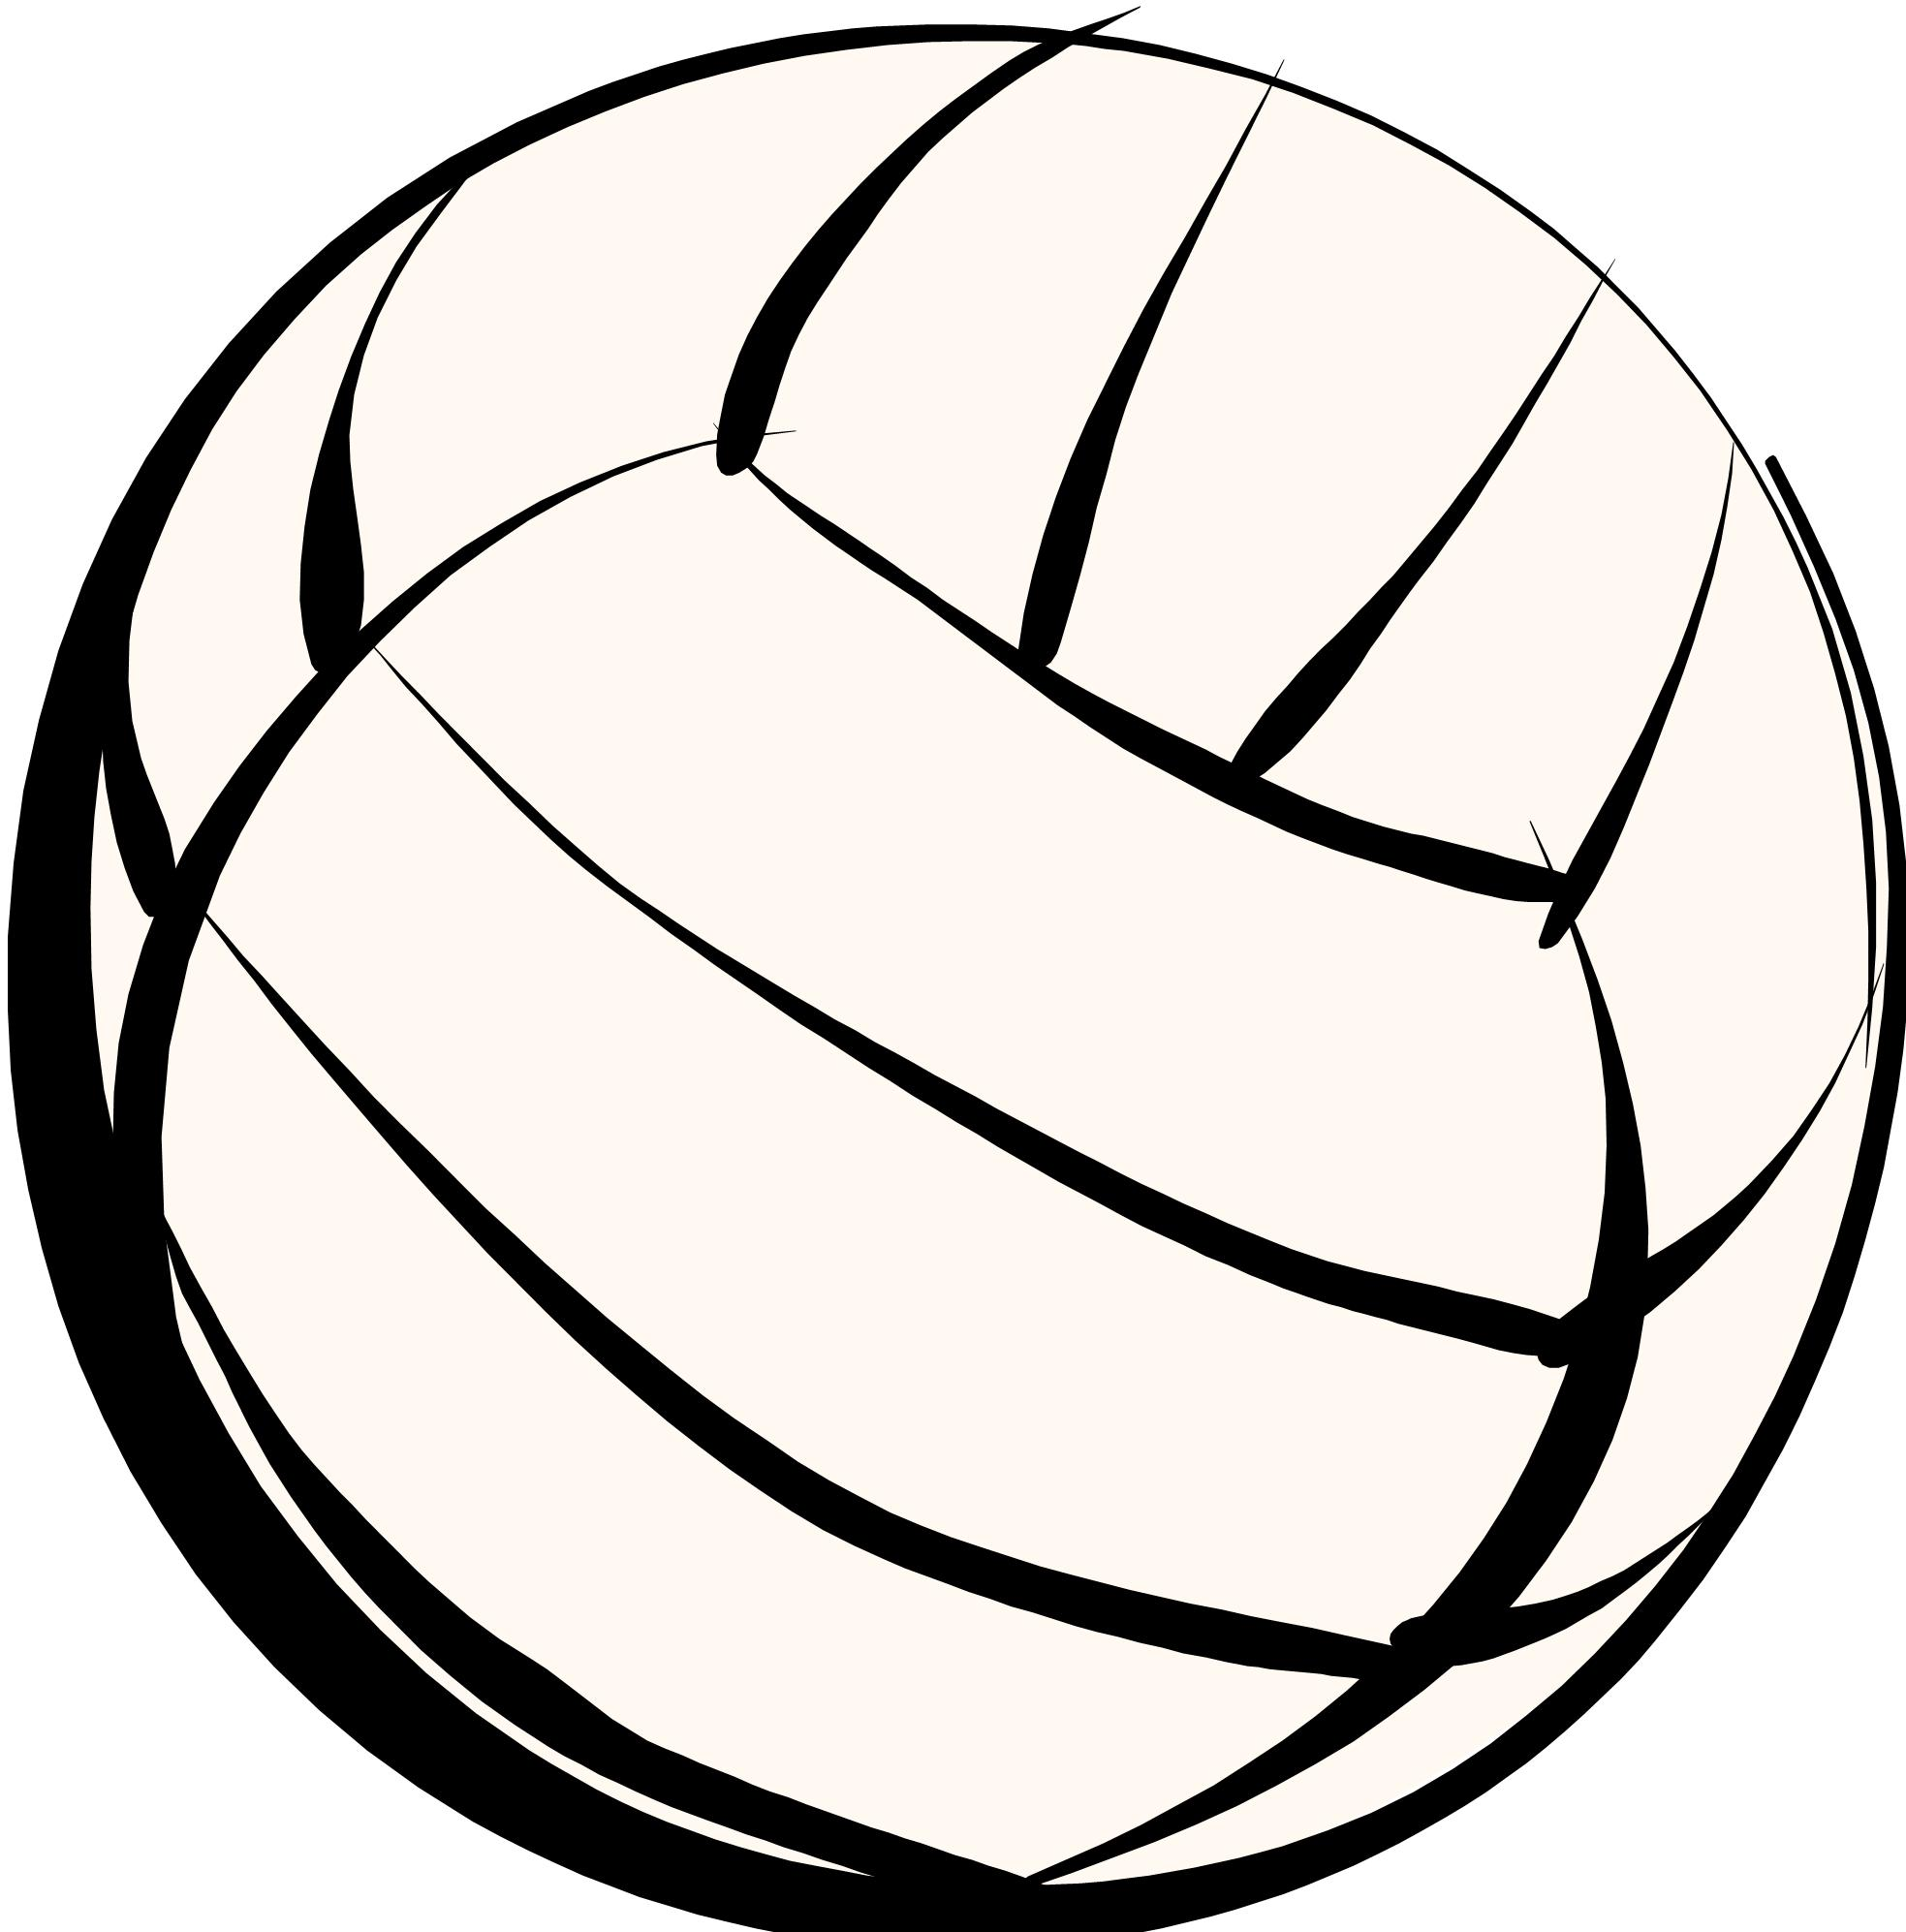 Volleyball Court Free Clipart.